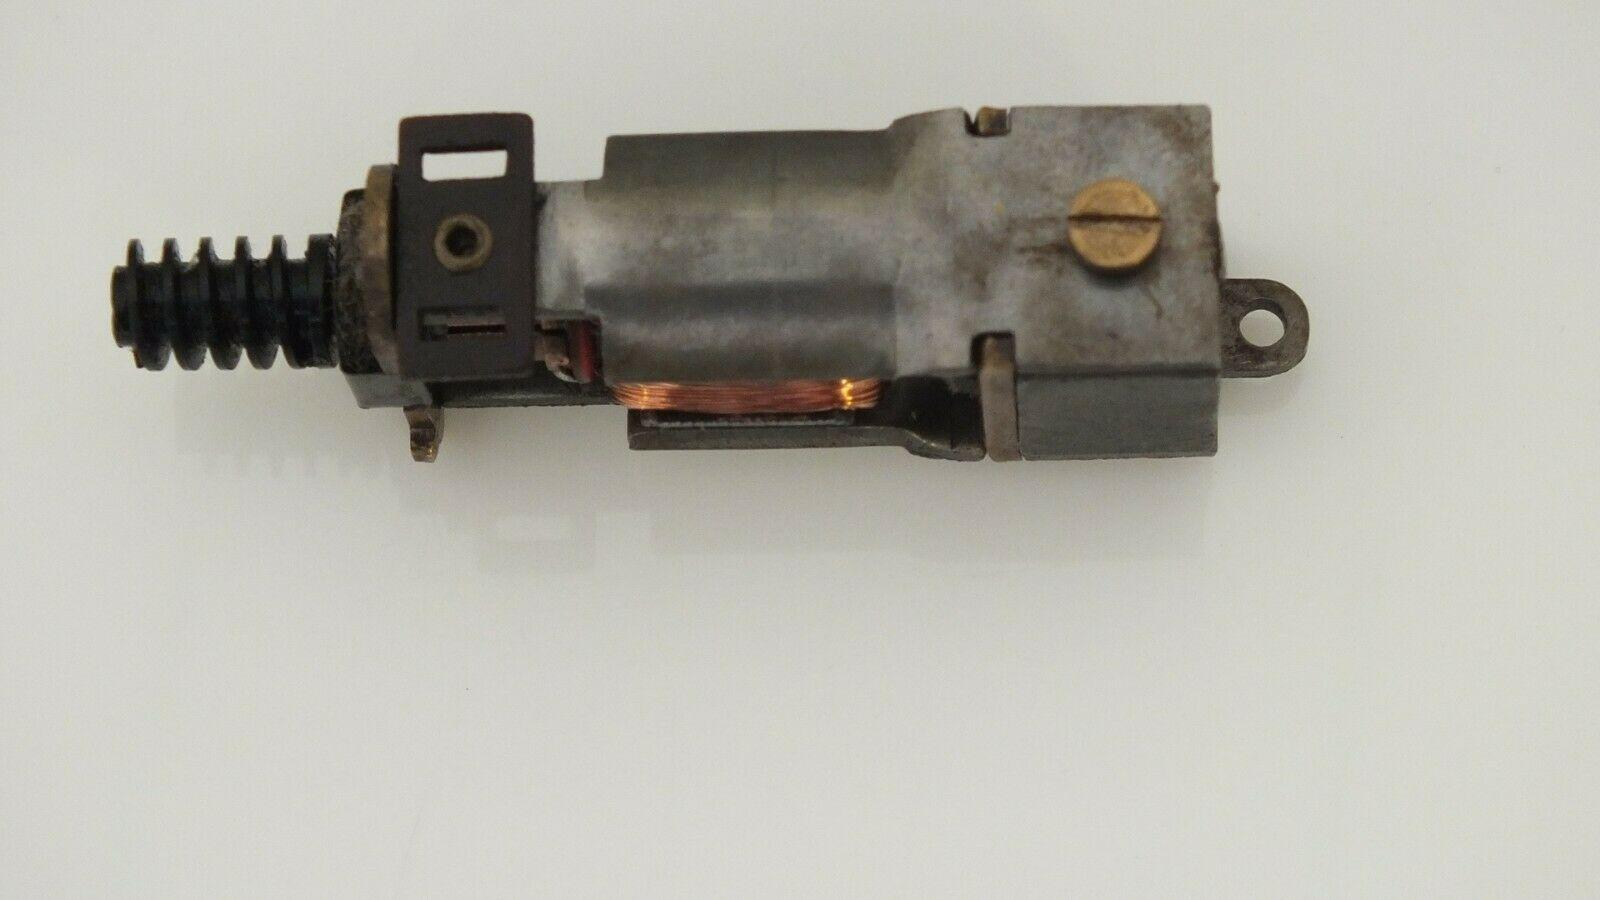 X03RP  # EXCHANGE MOTOR Hornby Triang spares reconditioned PLEASE READ DESC W19C